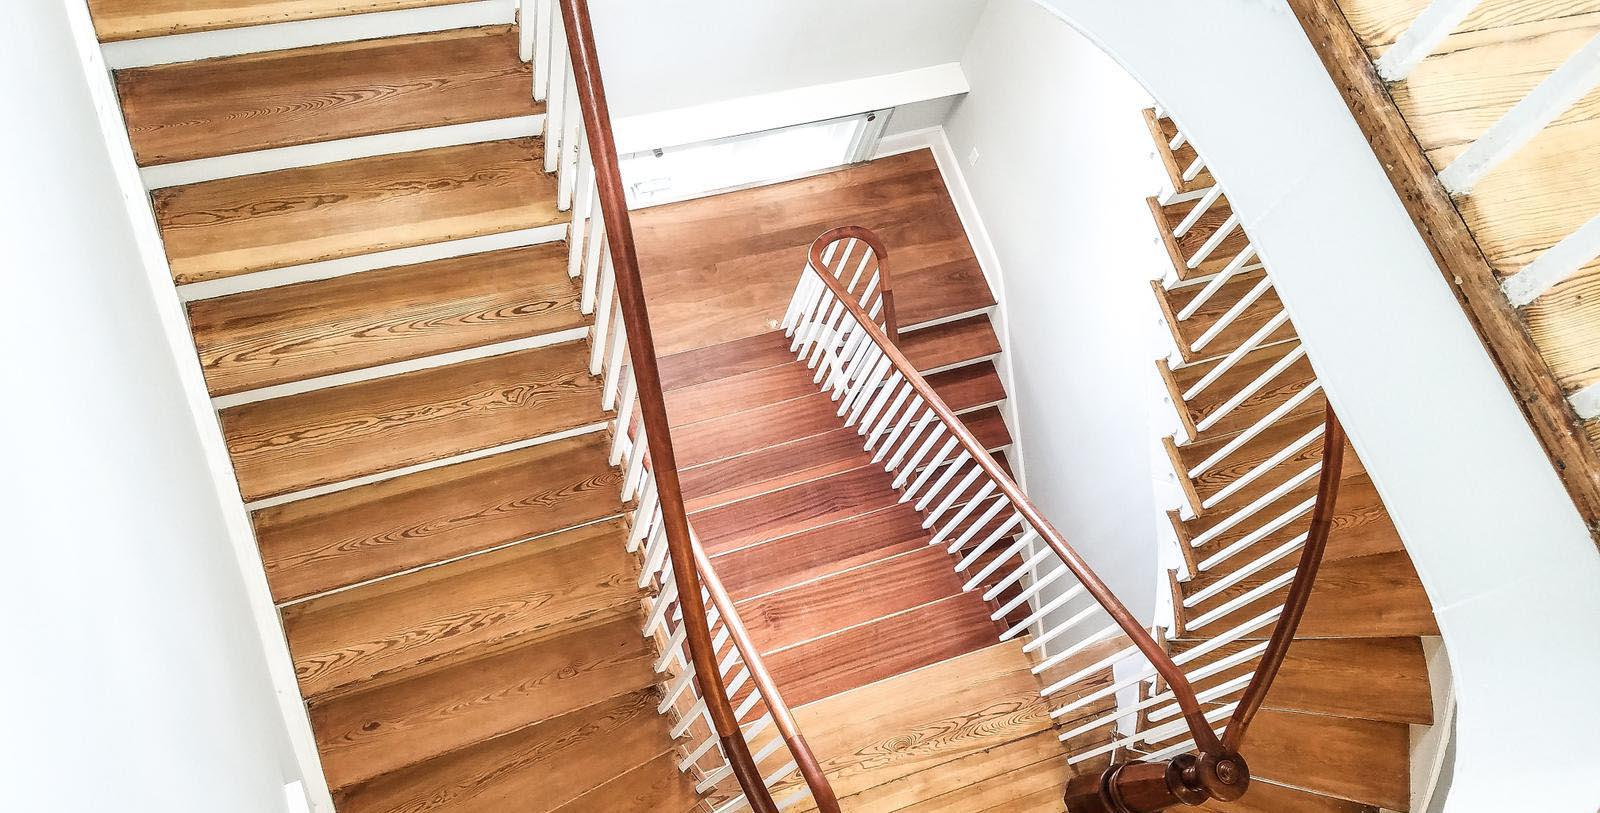 Image of Staircases at Blackburn Inn, 1828, Member of Historic Hotels of America, in Staunton, Virginia, Discover